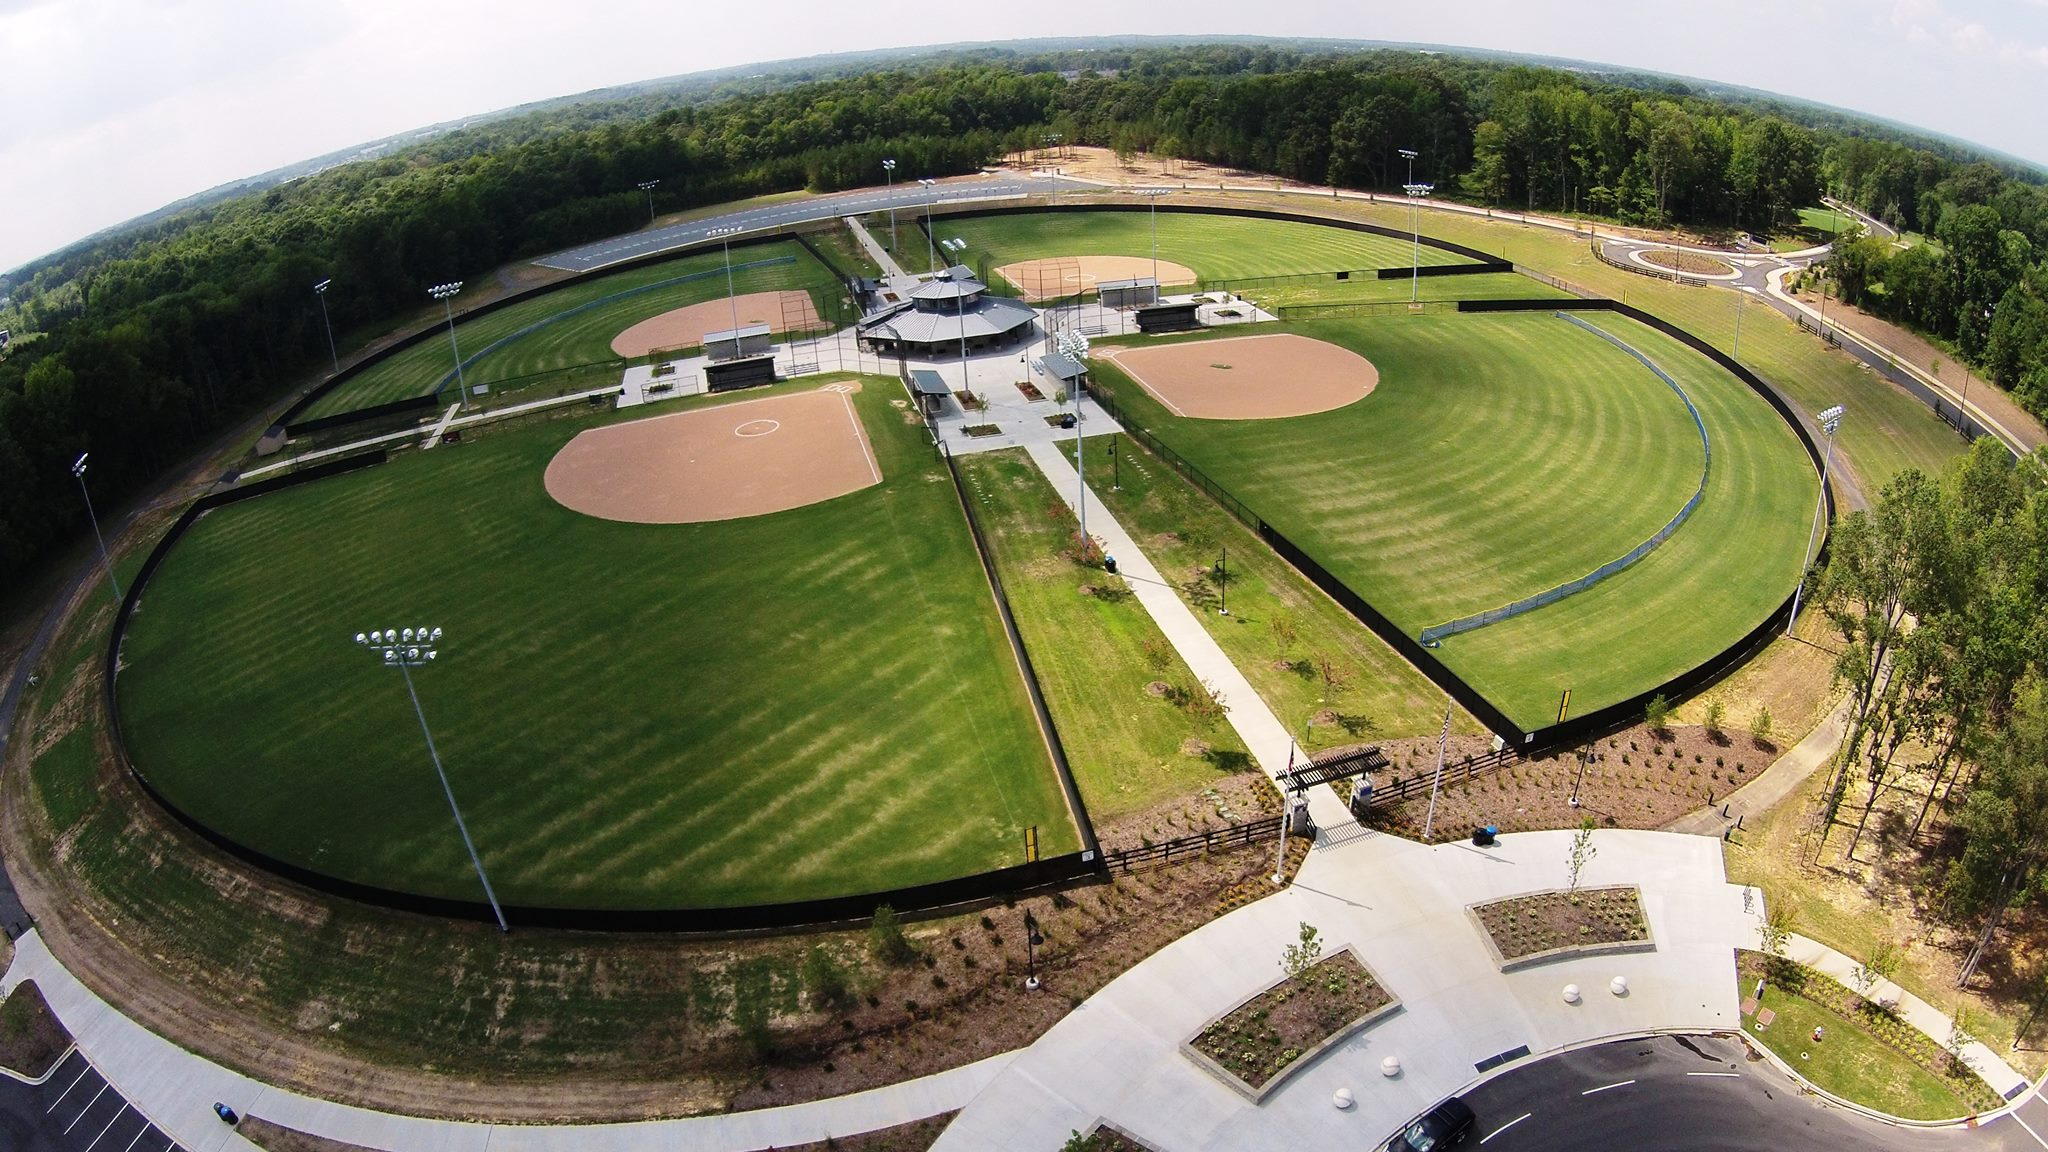 Crooked Creek Park ballfields from above